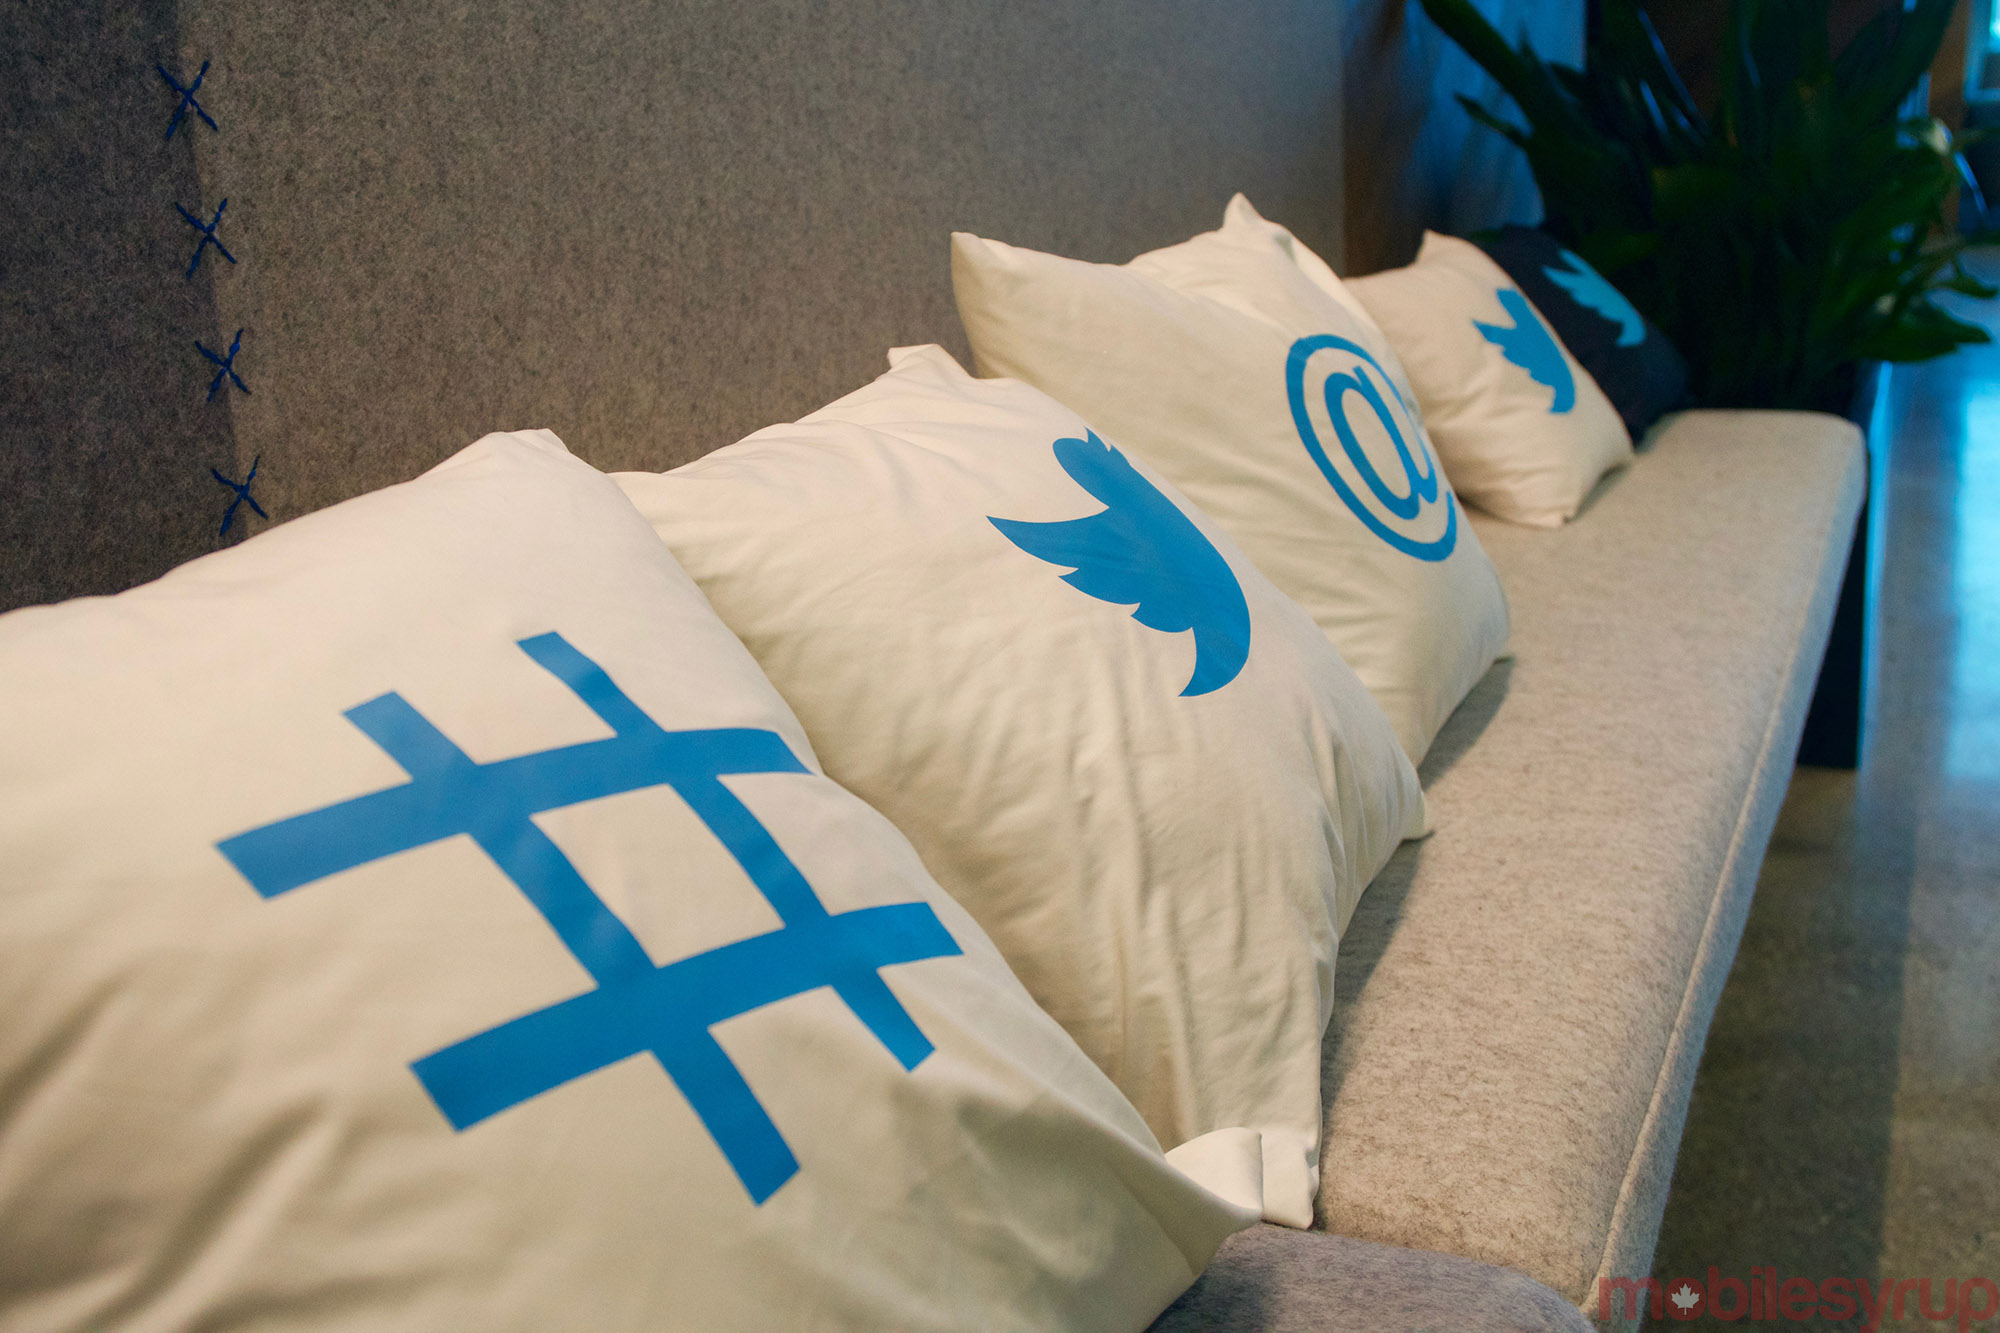 Twitter has an obsession with pillows, which can be found in great numbers throughout the company's Toronto outpost.